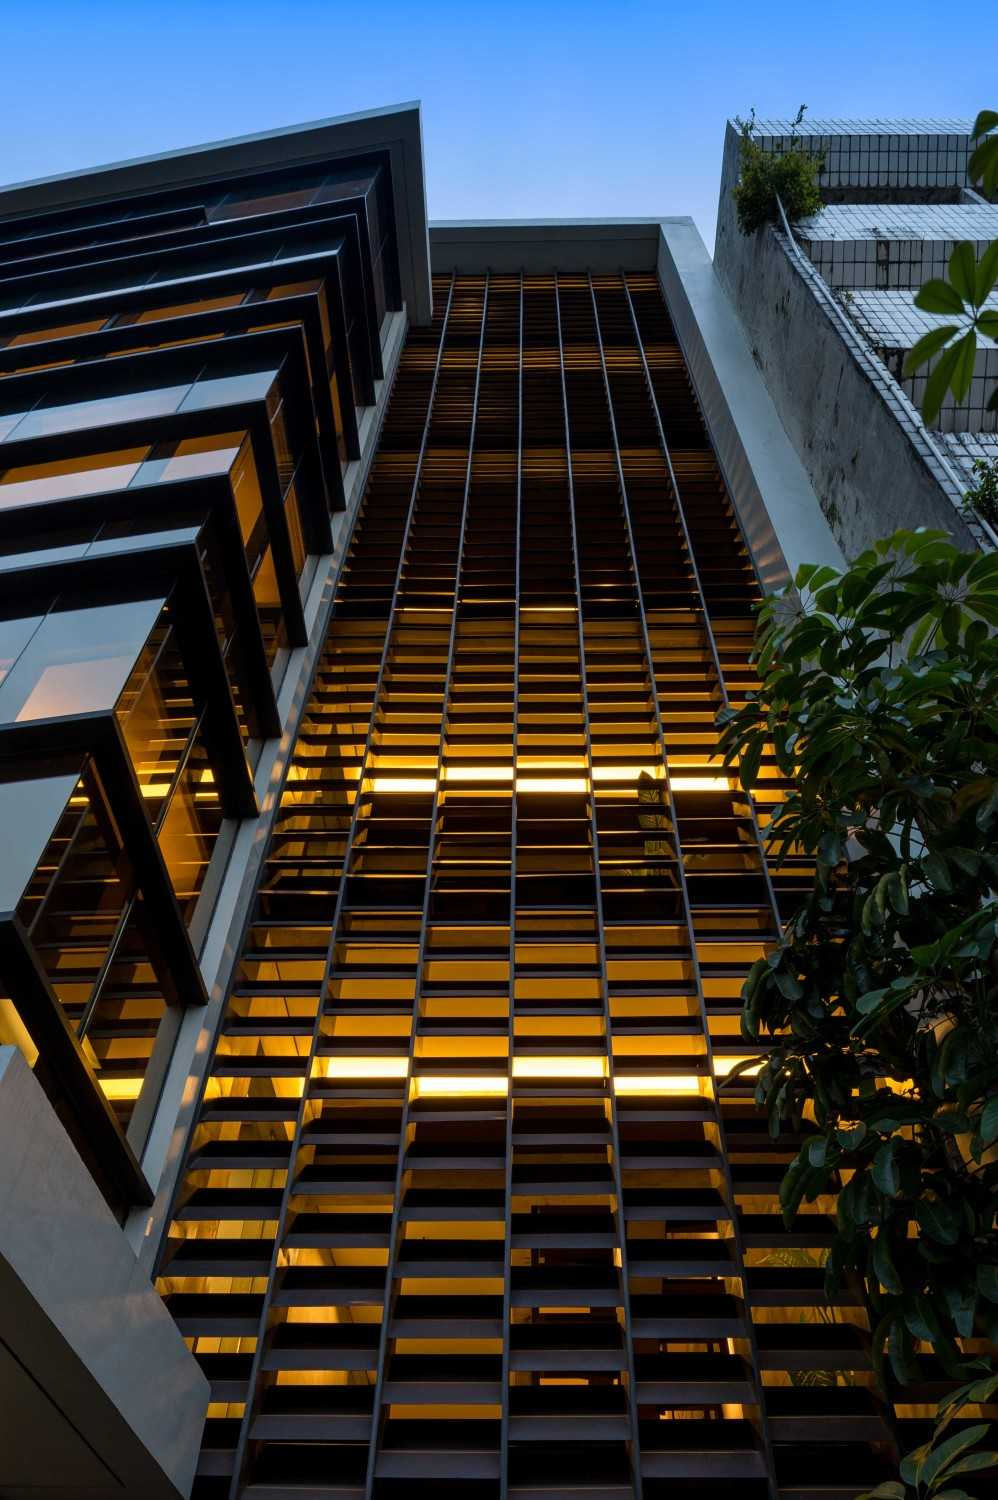 Hmparchitects Galileo Breezeway Central Jakarta, Indonesia Central Jakarta, Indonesia Galileo Facade Detail  10243